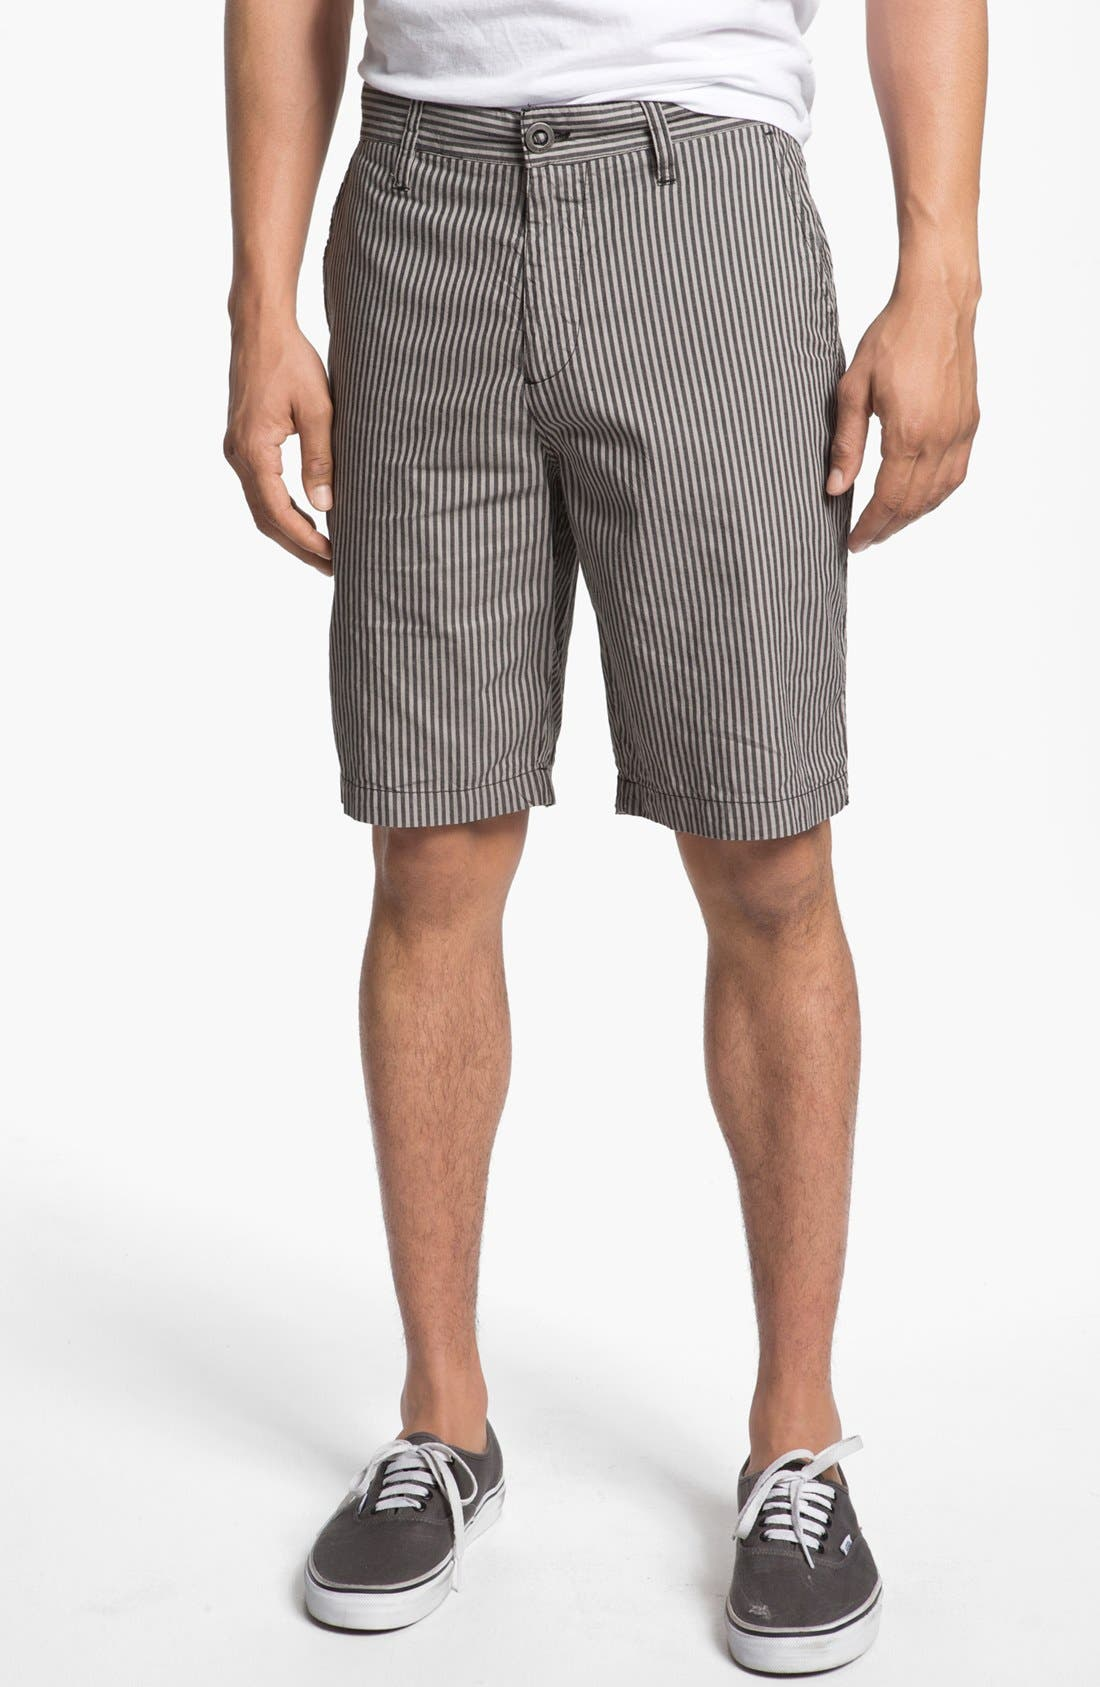 Alternate Image 1 Selected - Volcom 'Loco' Chino Shorts